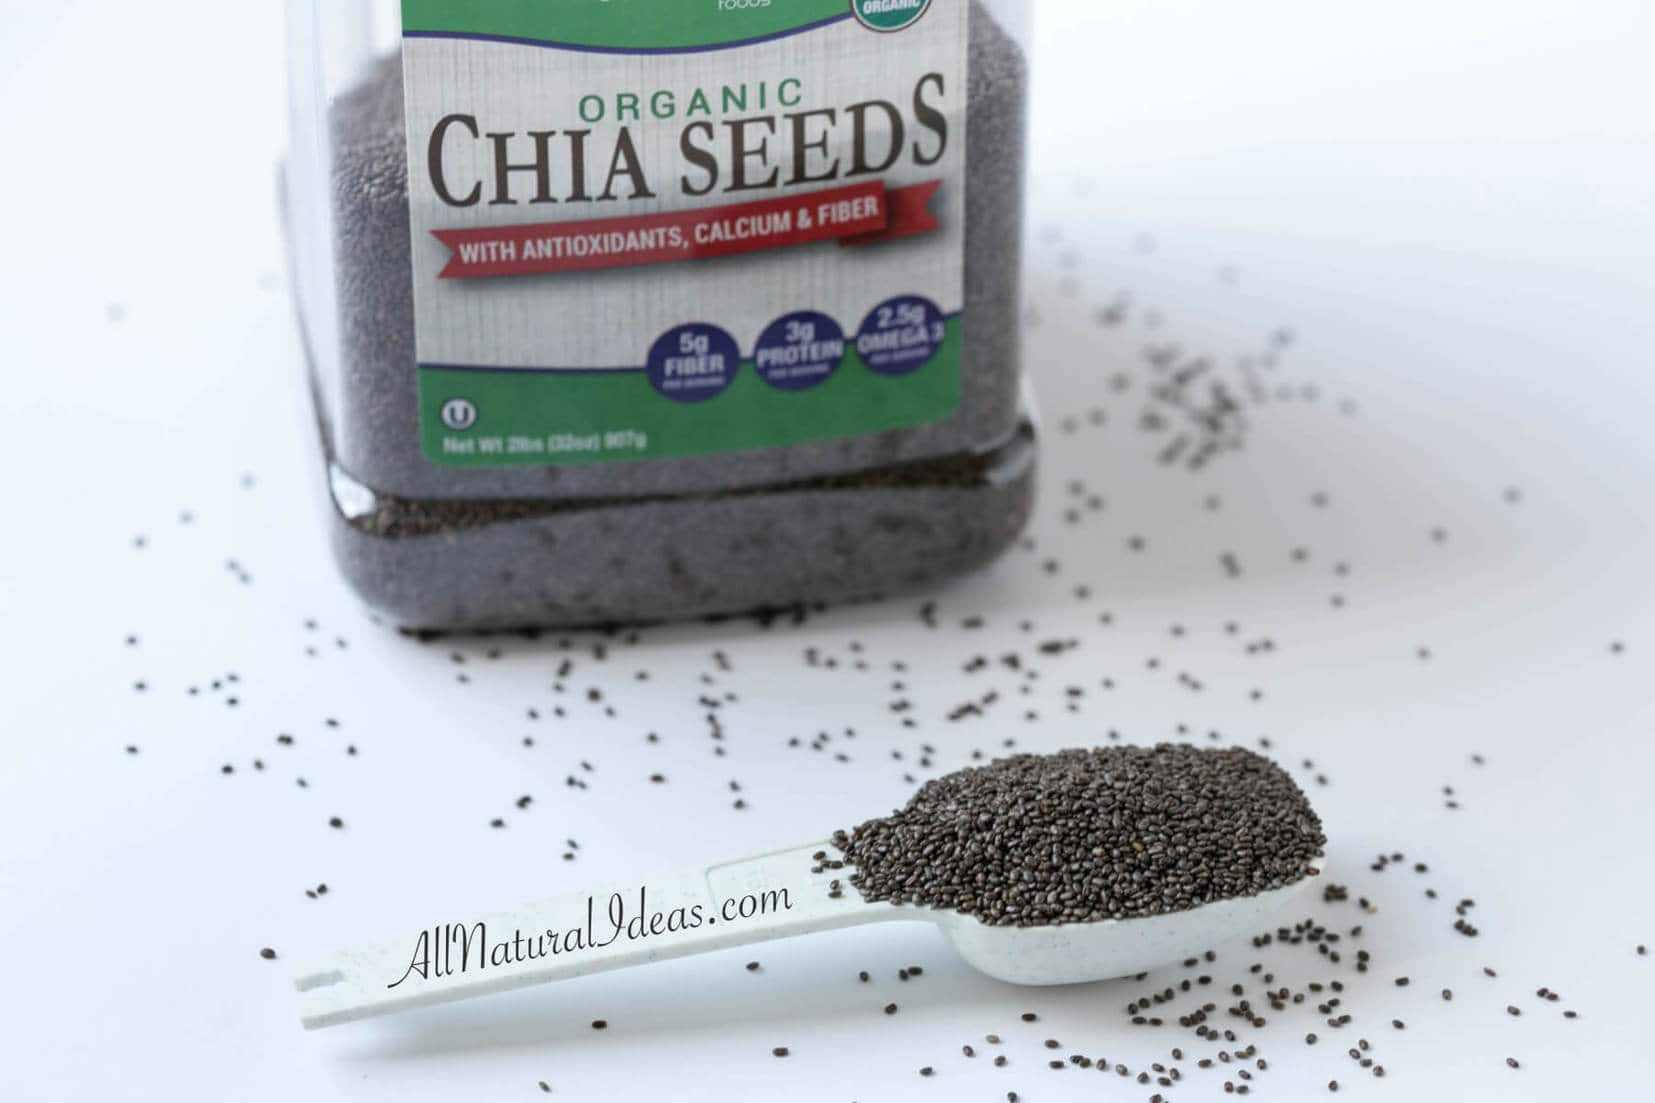 Top 5 Chia Seed Health Benefits and Recipes. Do you know what the chia seed health benefits are? These tiny seeds can provide quite a bit of nutrition into your diet.